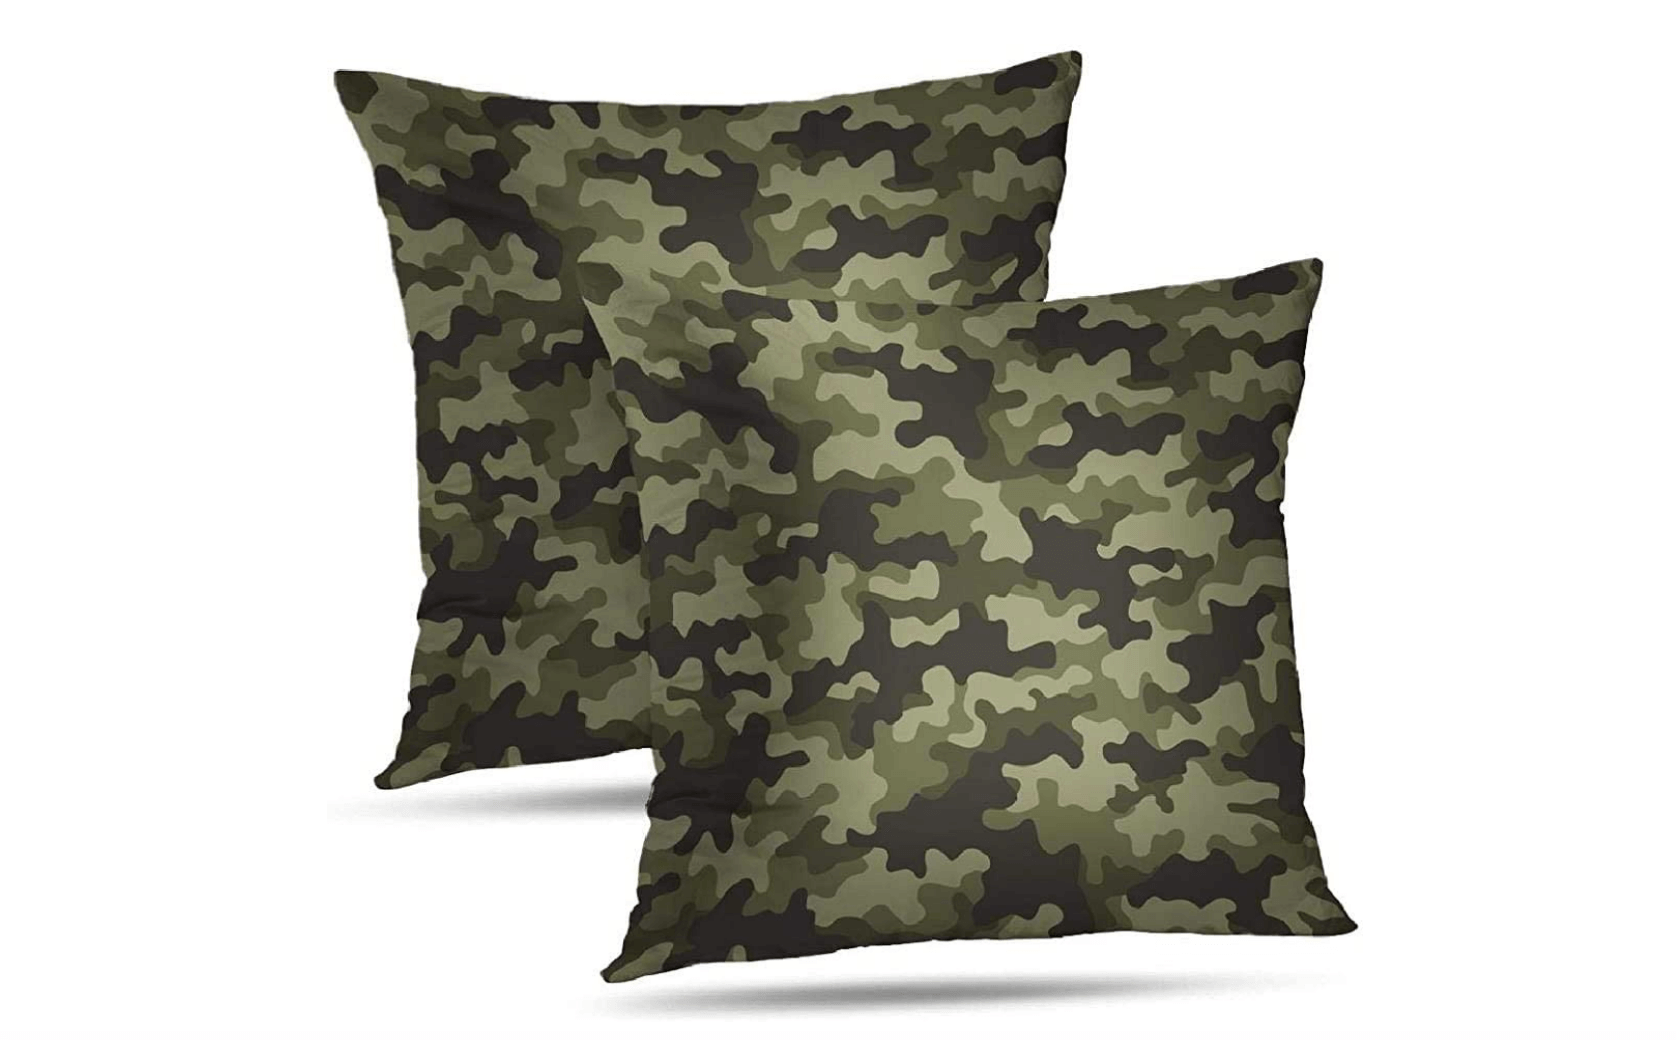 Estampado militar en la decoración